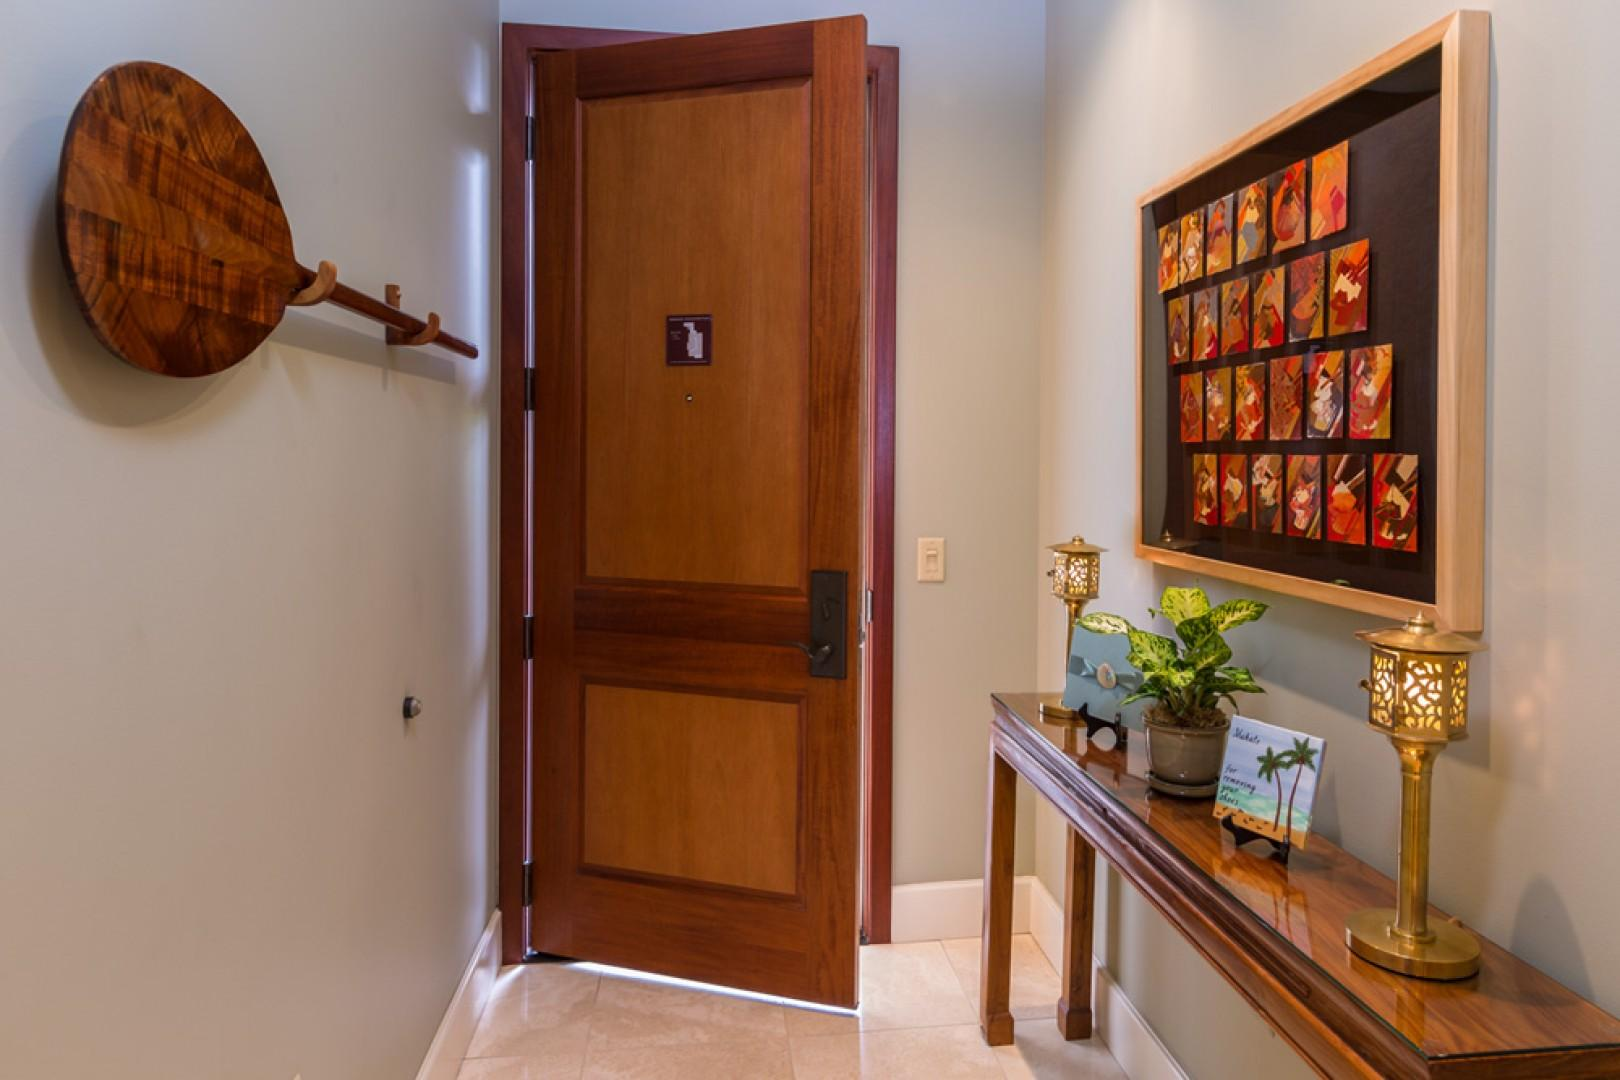 J505 Orient Pacific Suite - Front Door Entry Hallway Decorated with a Koa wood paddle and original art